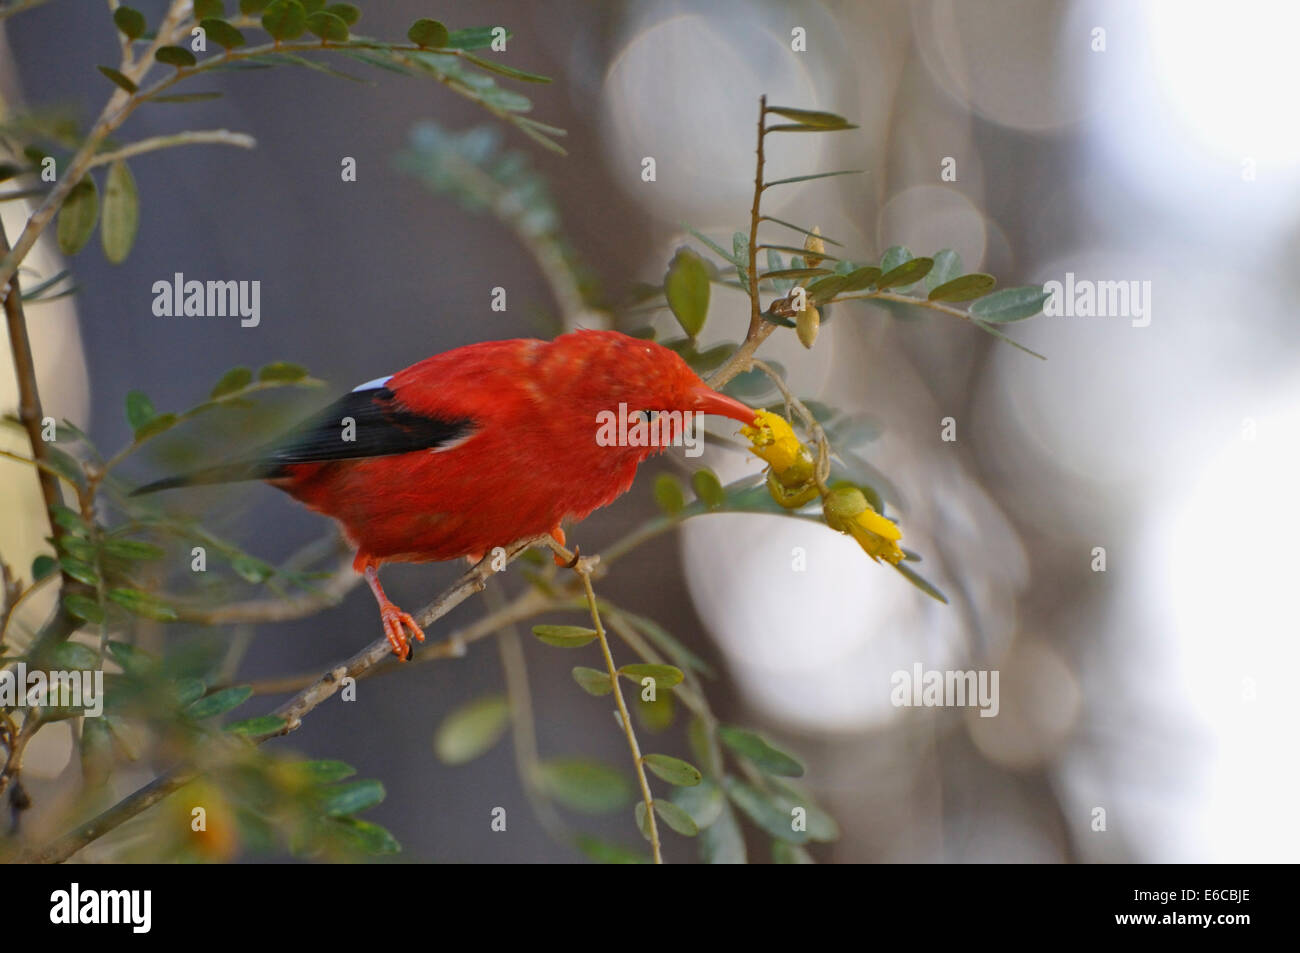 An 'I'iwi bird extracting nectar from yellow tree flowers in Maui Island, Hawaii Islands, USA. Stock Photo